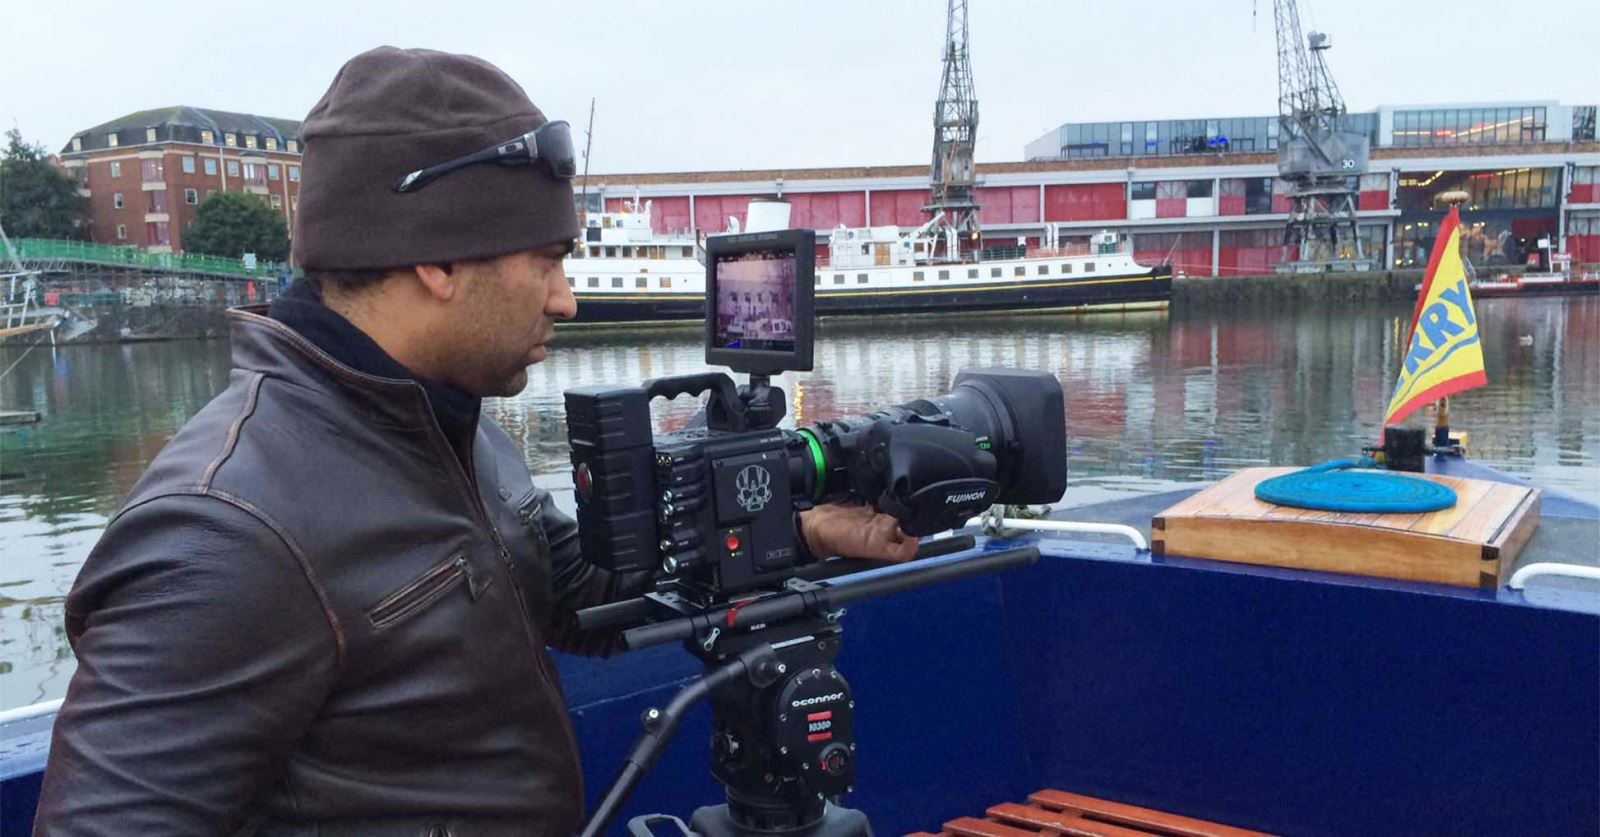 DoP Christian Dimitrius trying out the brand new Helium 8K sensor RED camera in Bristol at Wildscreen